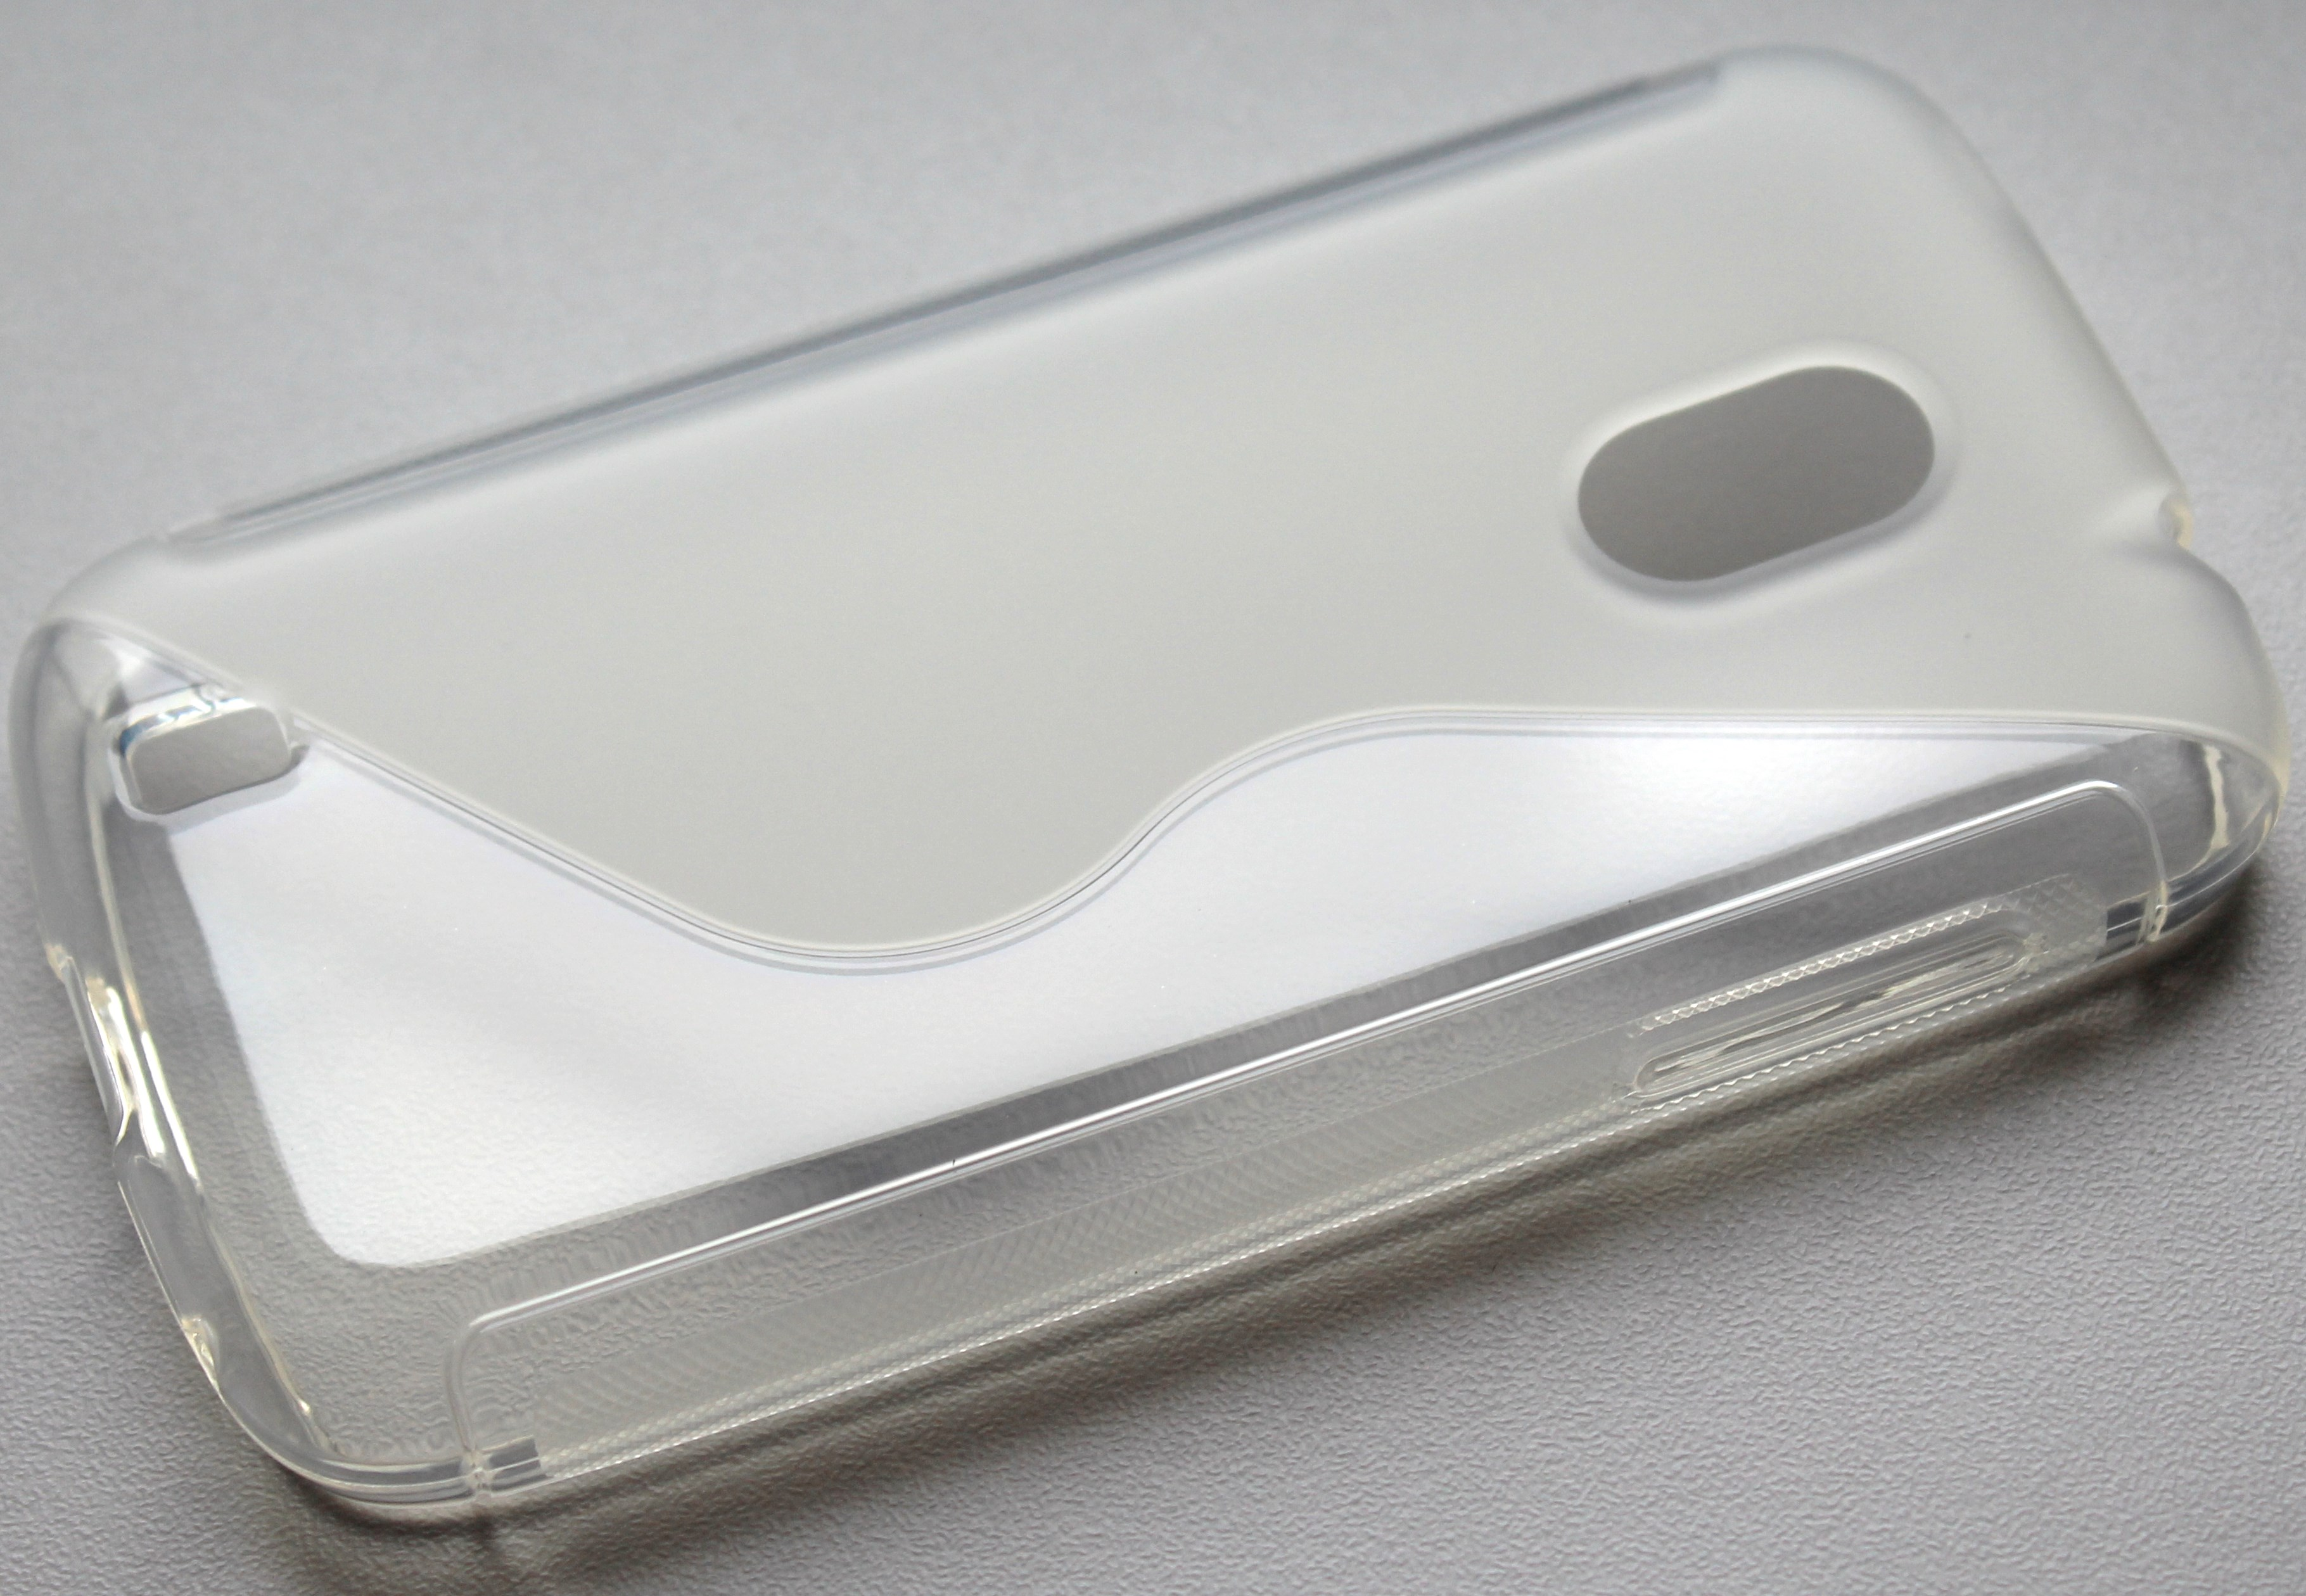 S Case pouzdro ZTE Blade III transparent white